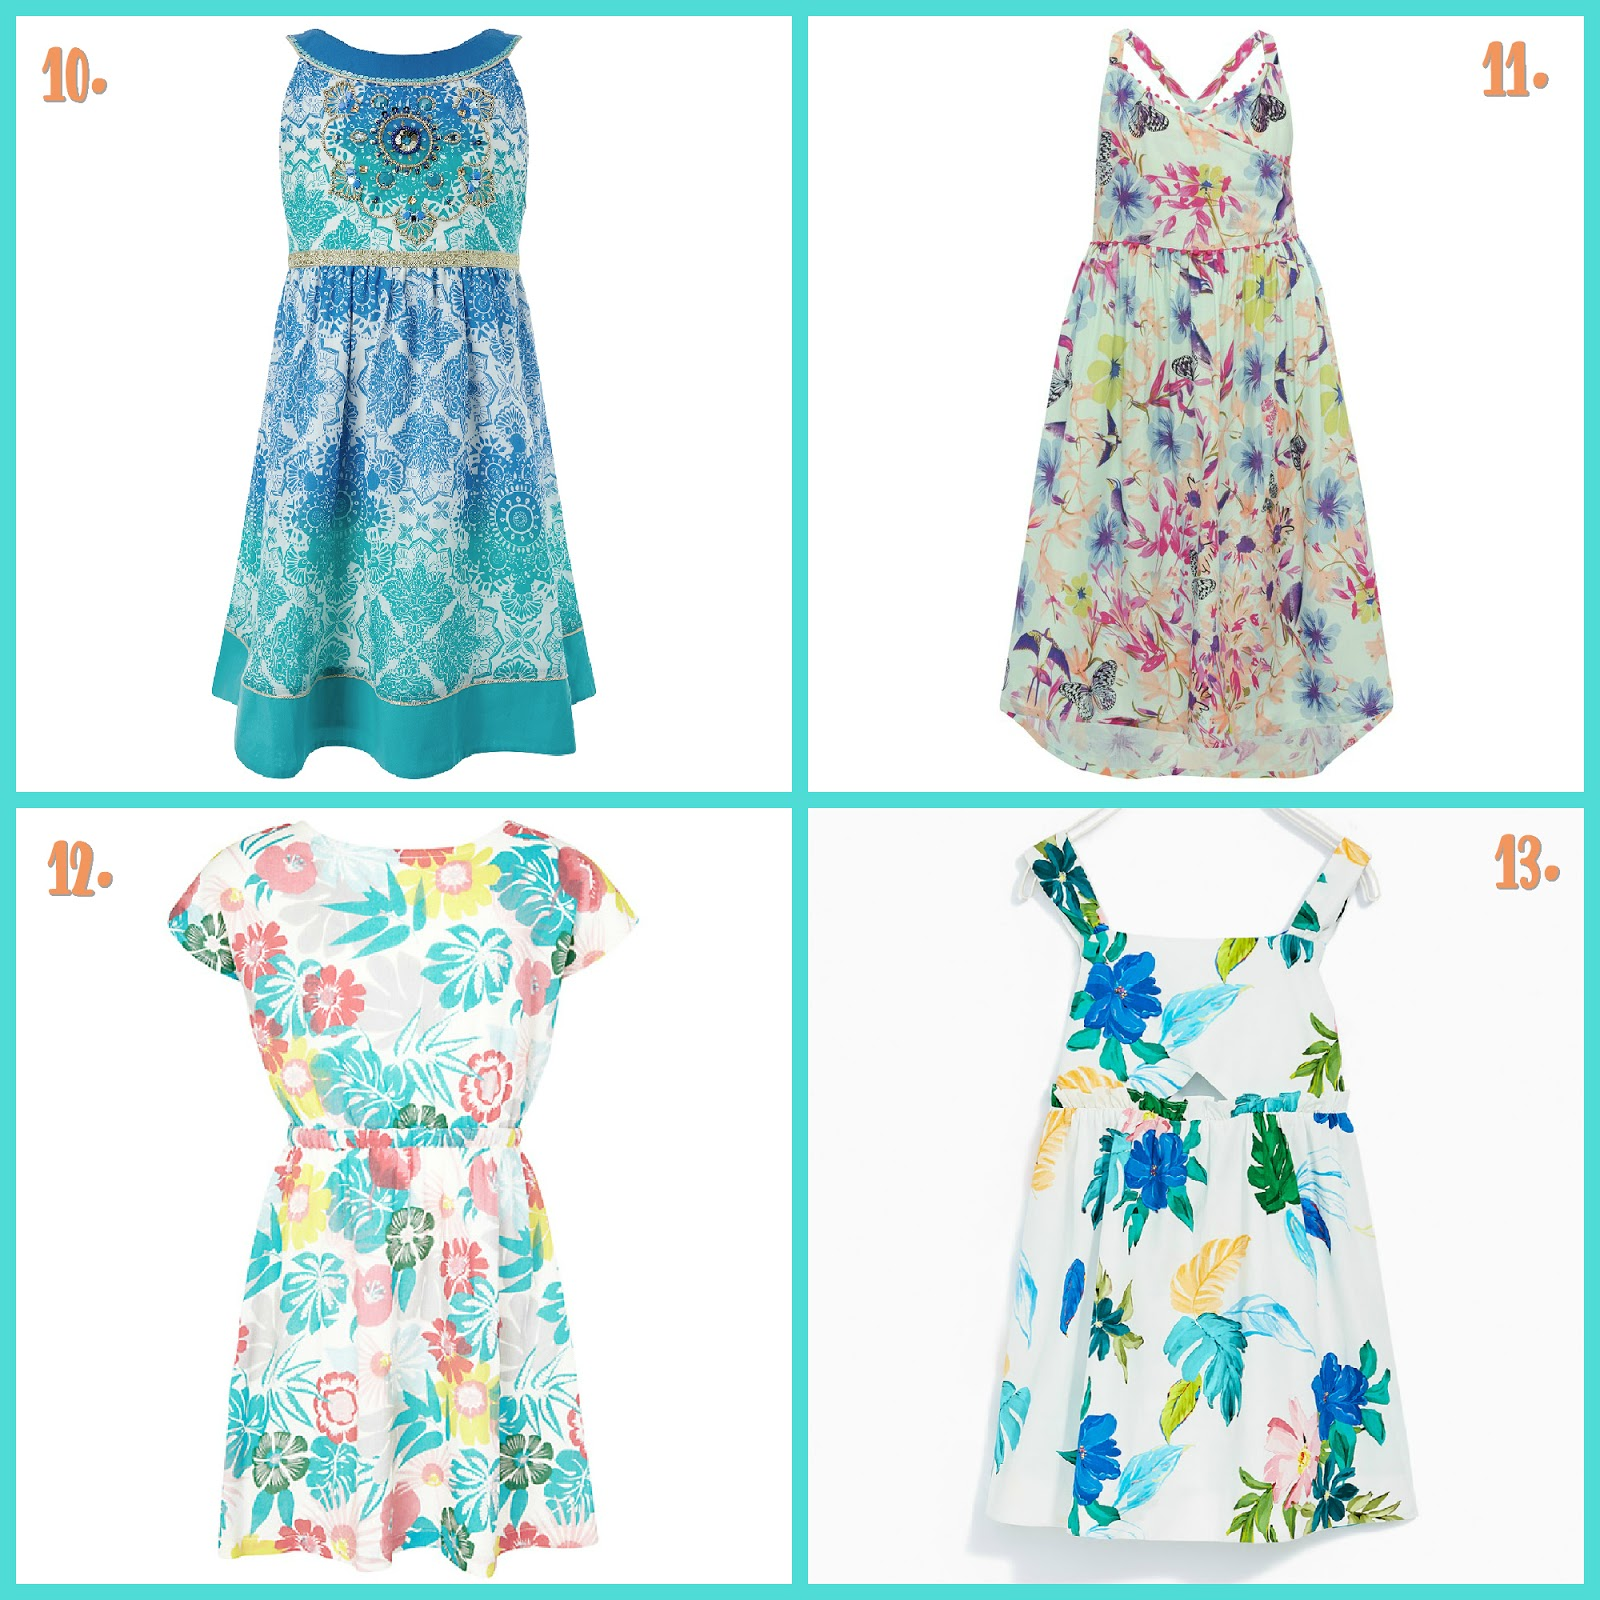 Our Cherry Tree: Party Planning - Tropical Party Outfits for Girls